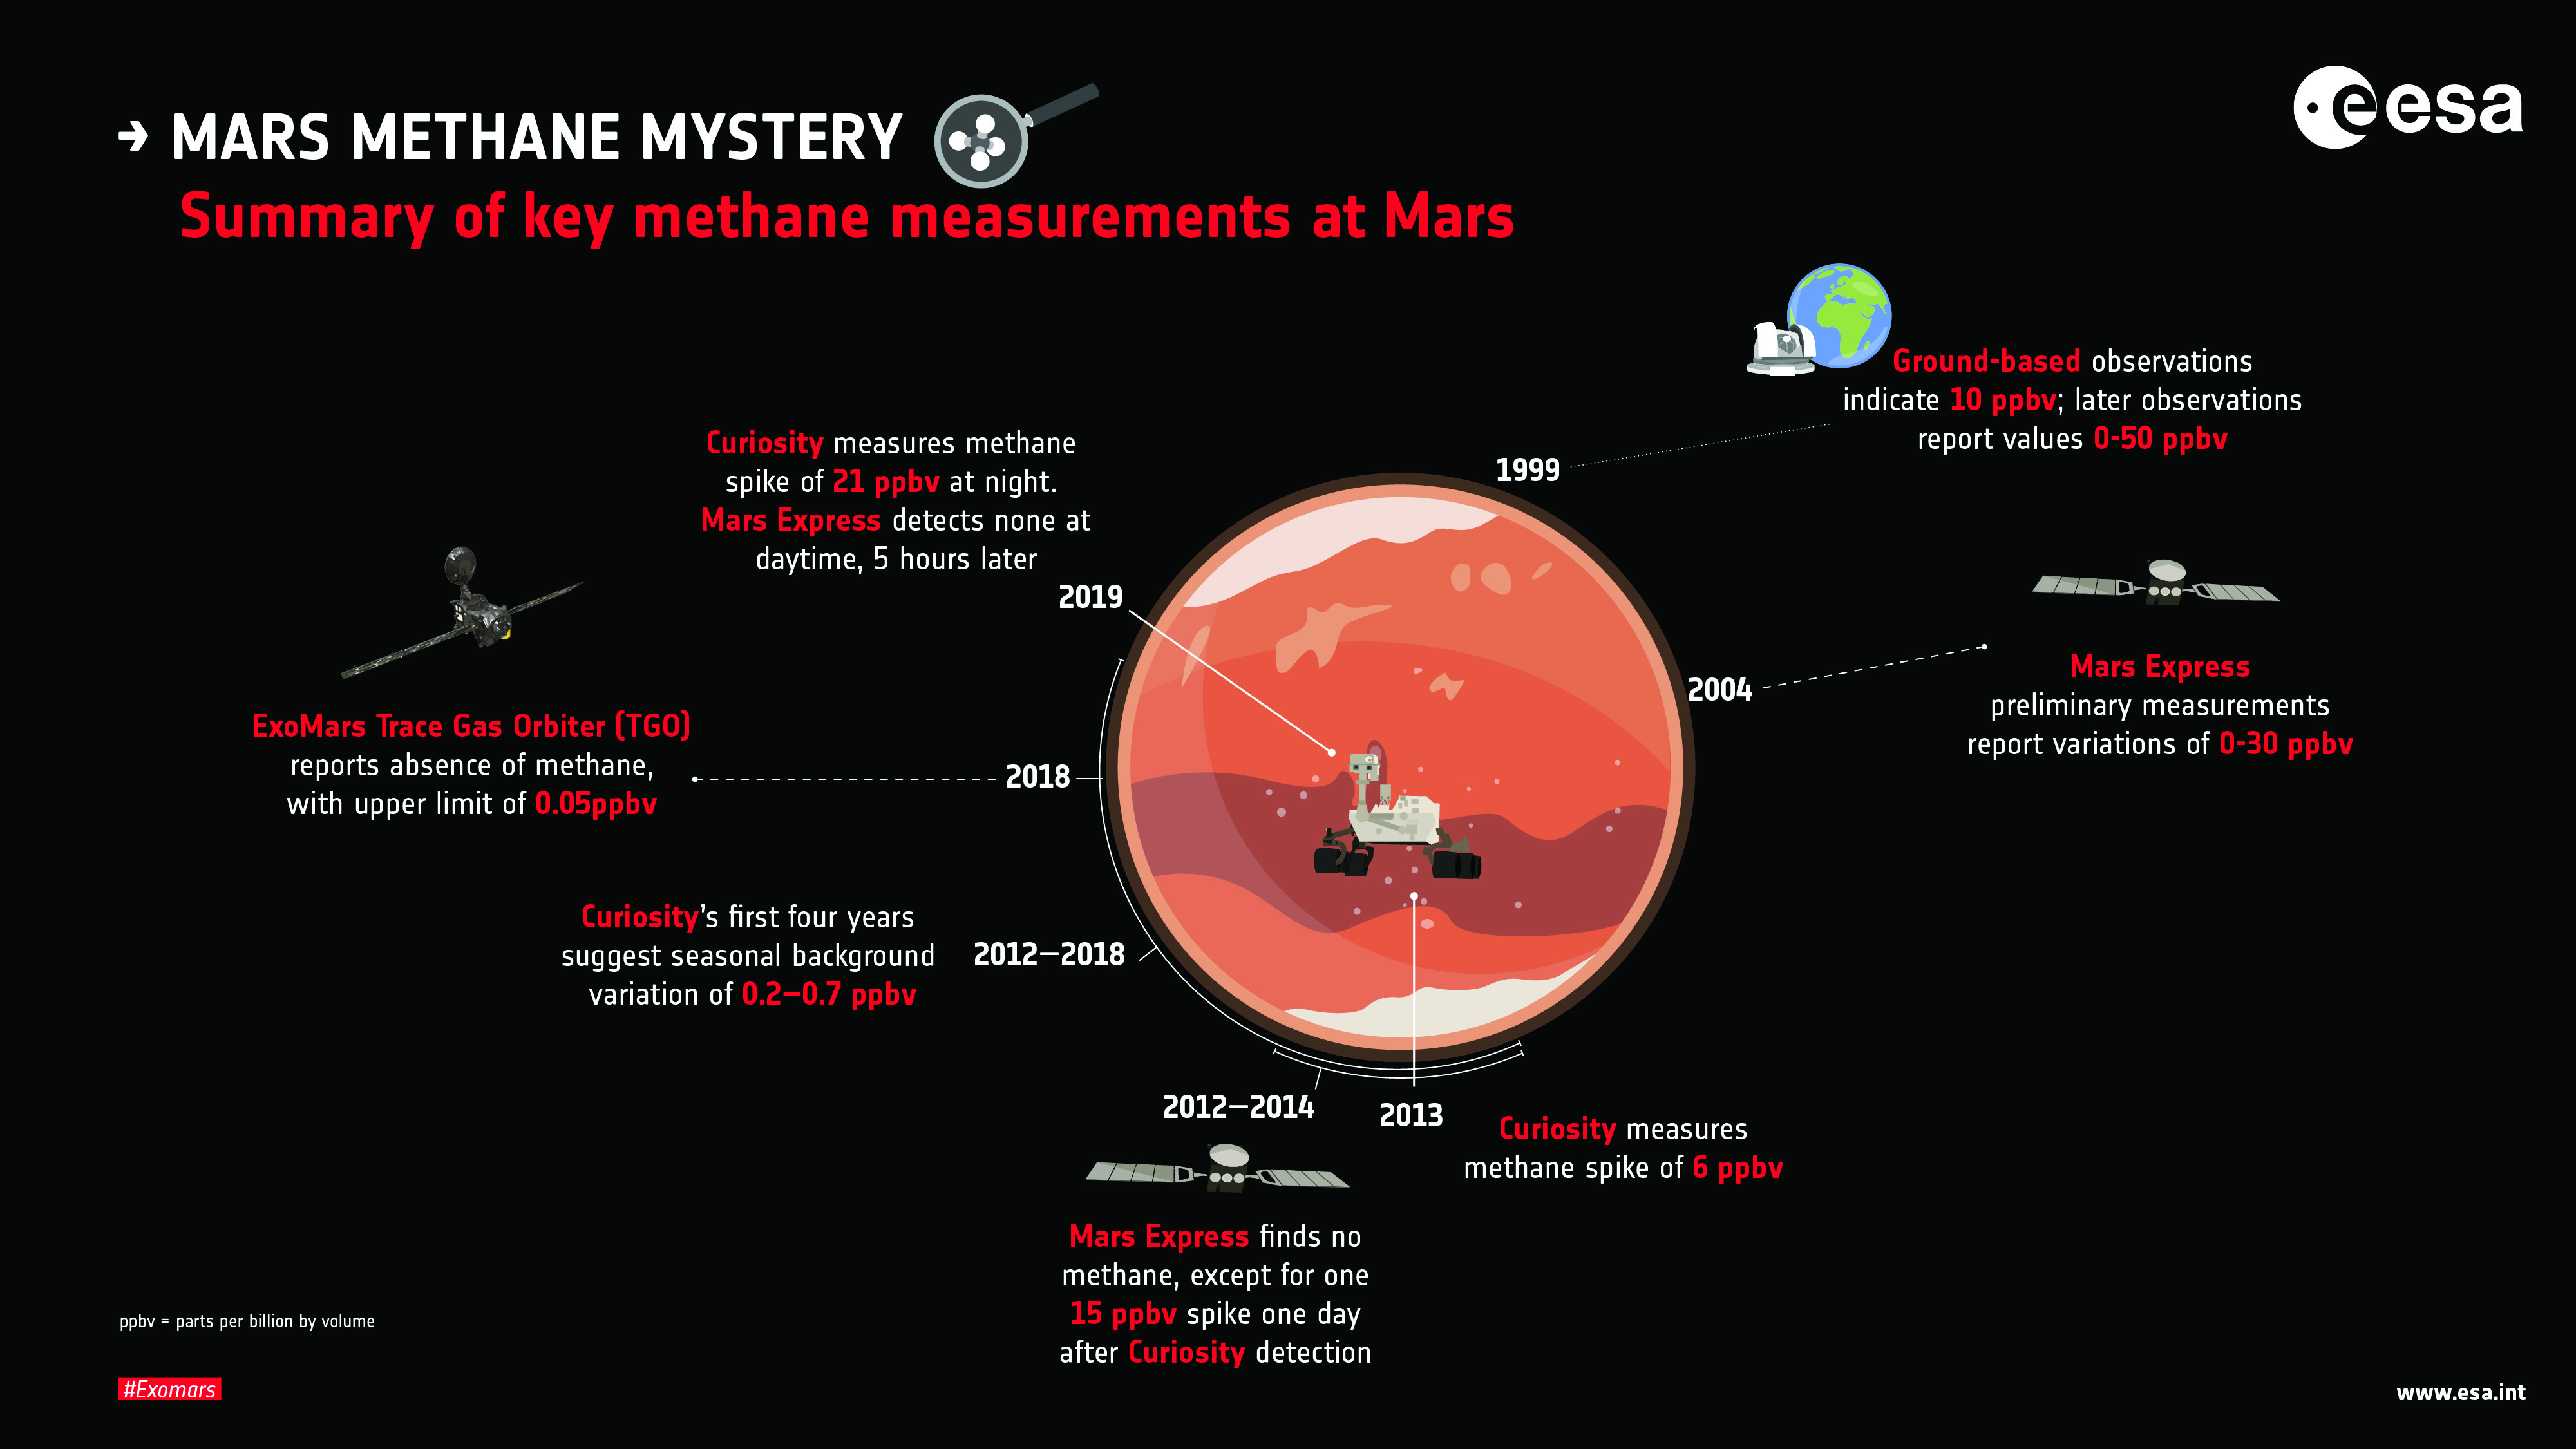 http://press.cosmos.ru/sites/default/files/pics/key_methane_measurements_at_mars.jpg